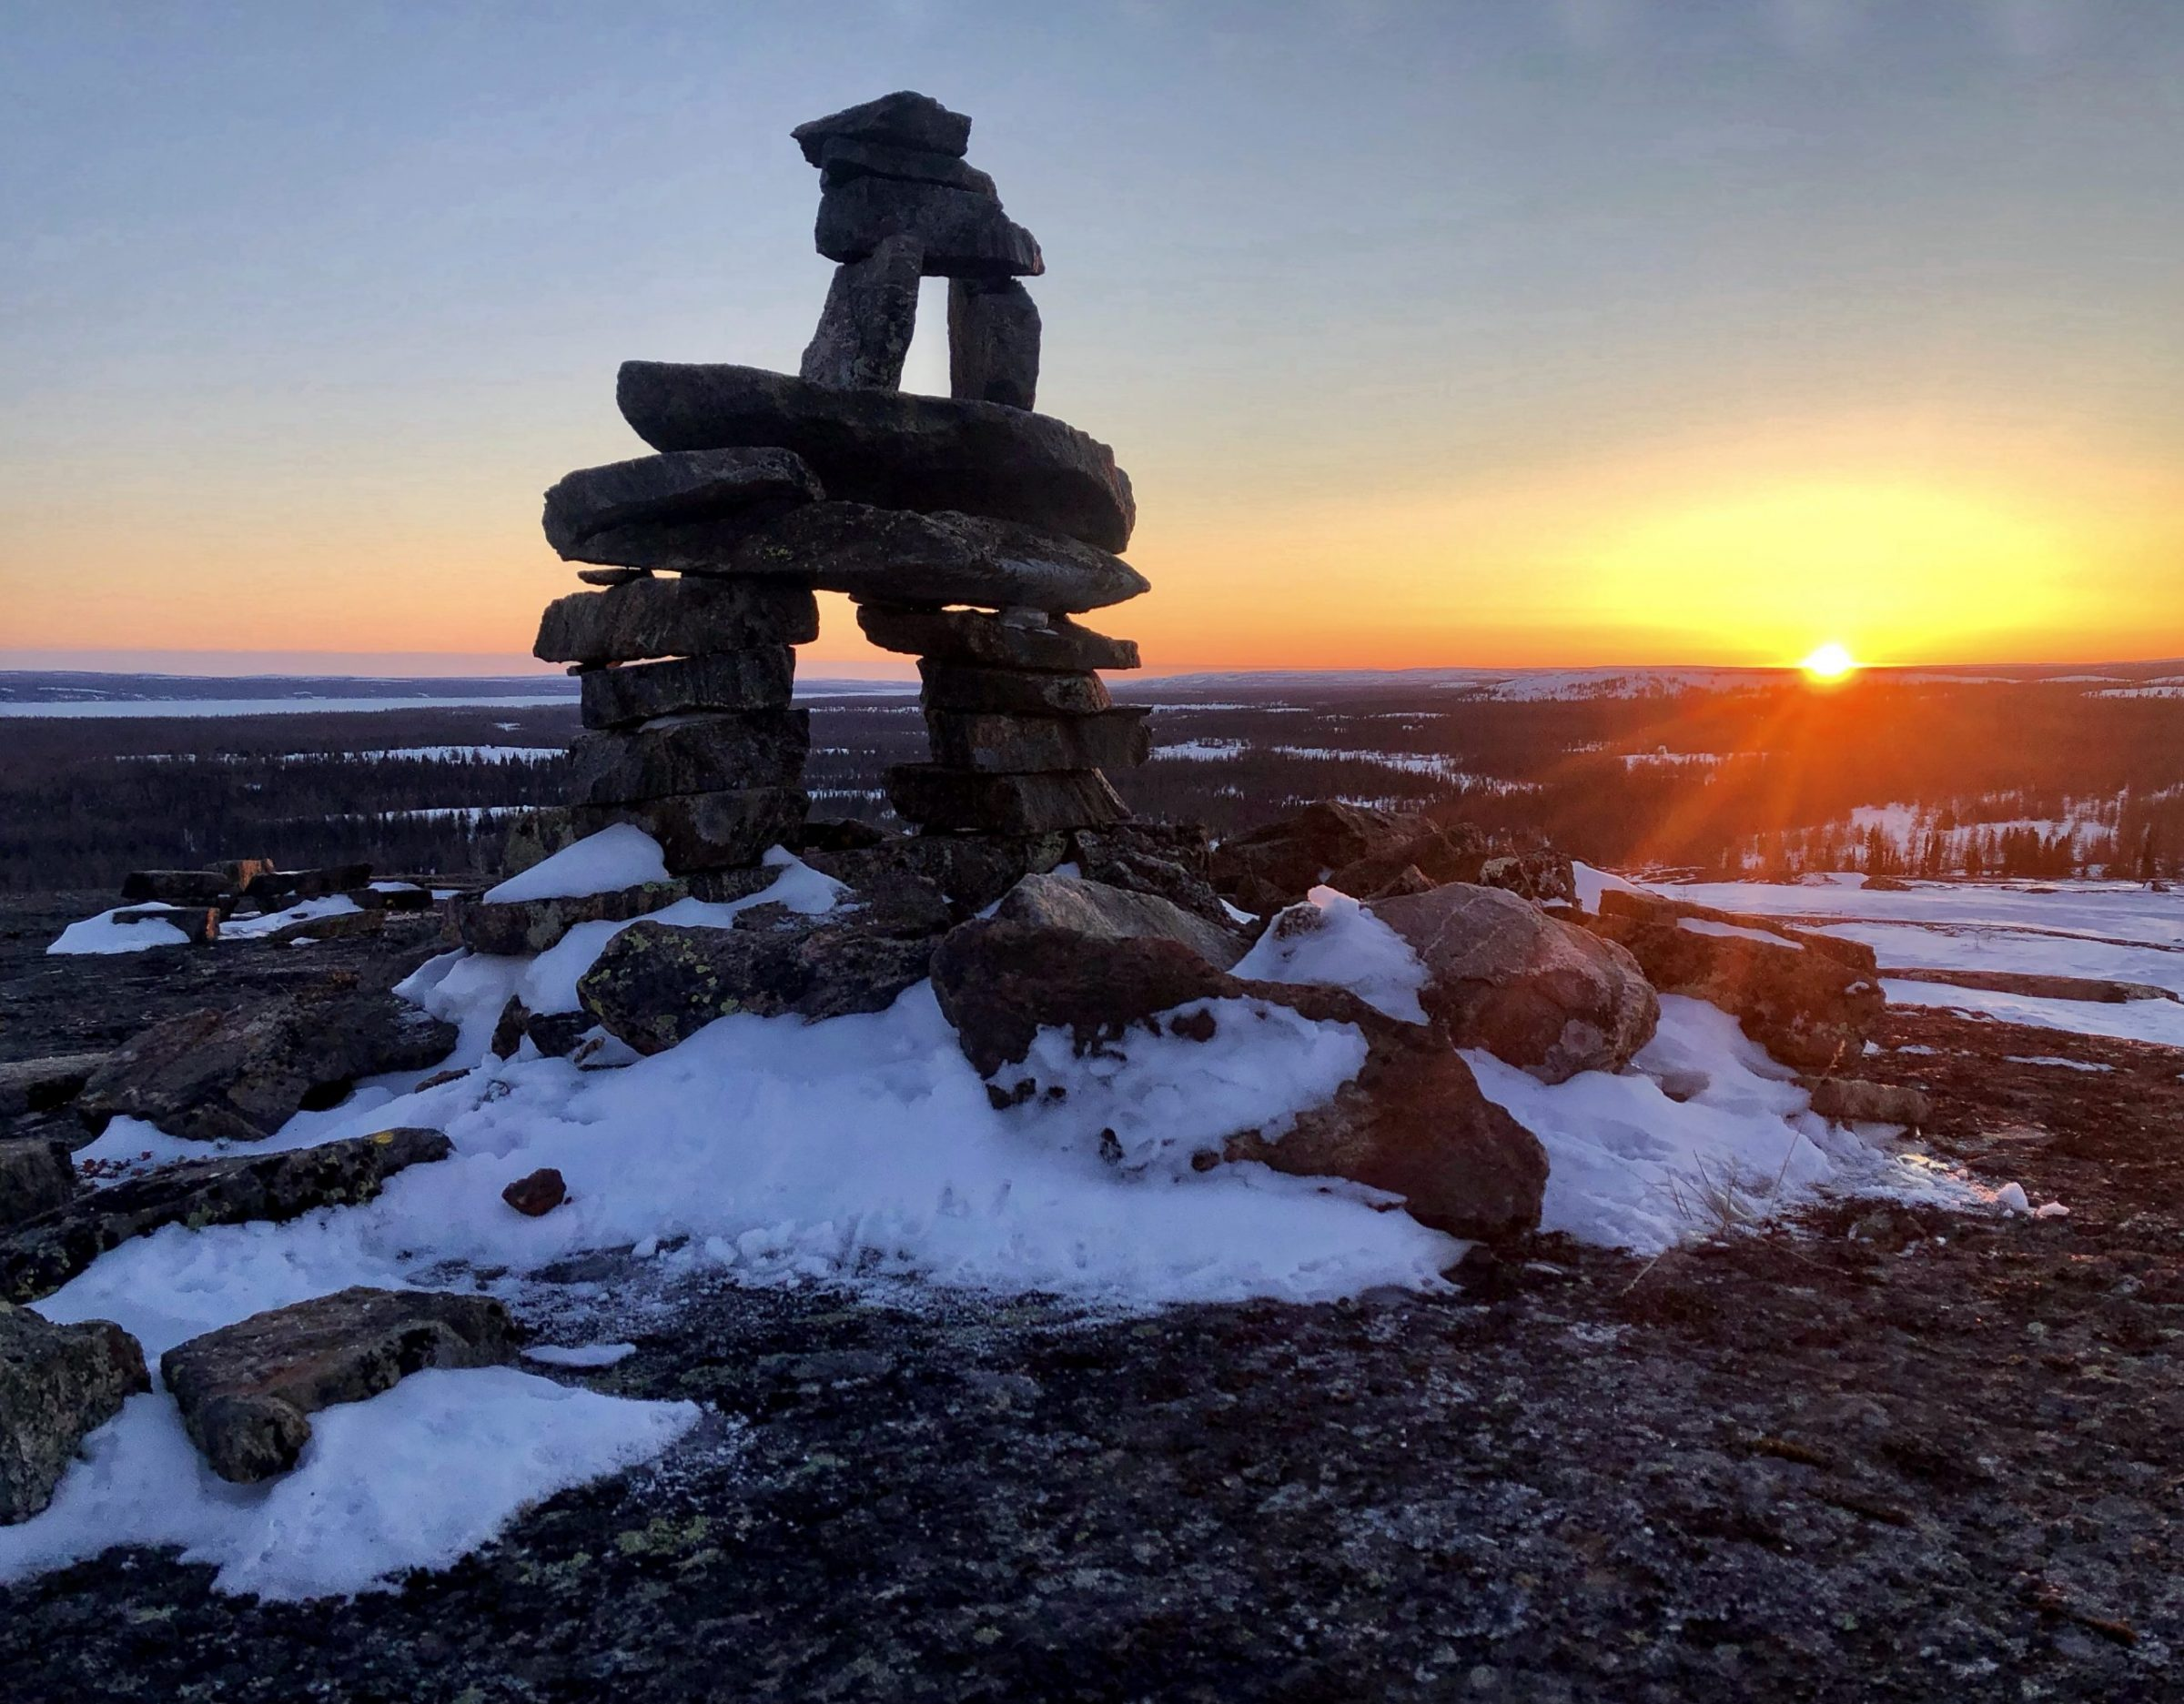 "Isabelle Dubois captured this image of an inuksuk near the Range neighbourhood of Kuujjuaq on Saturday, March 20, the first day of spring. ""Now that we have moved the time forward, it's definitely nice to enjoy longer days, with beautiful sunsets like this one,"" she wrote. (Photo by Isabelle Dubois)"